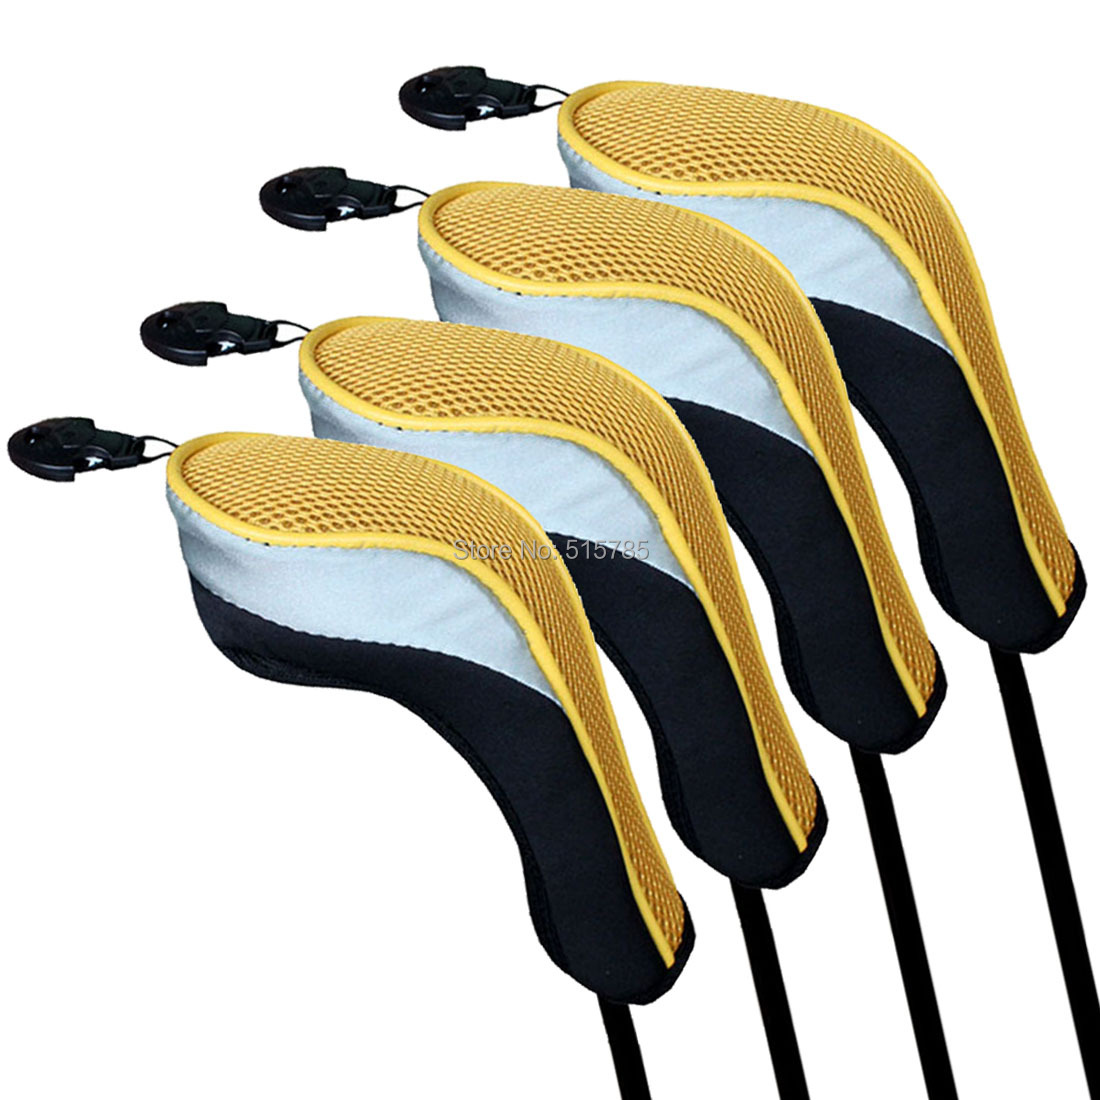 Andux Golf Hybrid Club Head Covers Set Of 4 Black & Yellow Interchangeable No. Tag MT/hy02